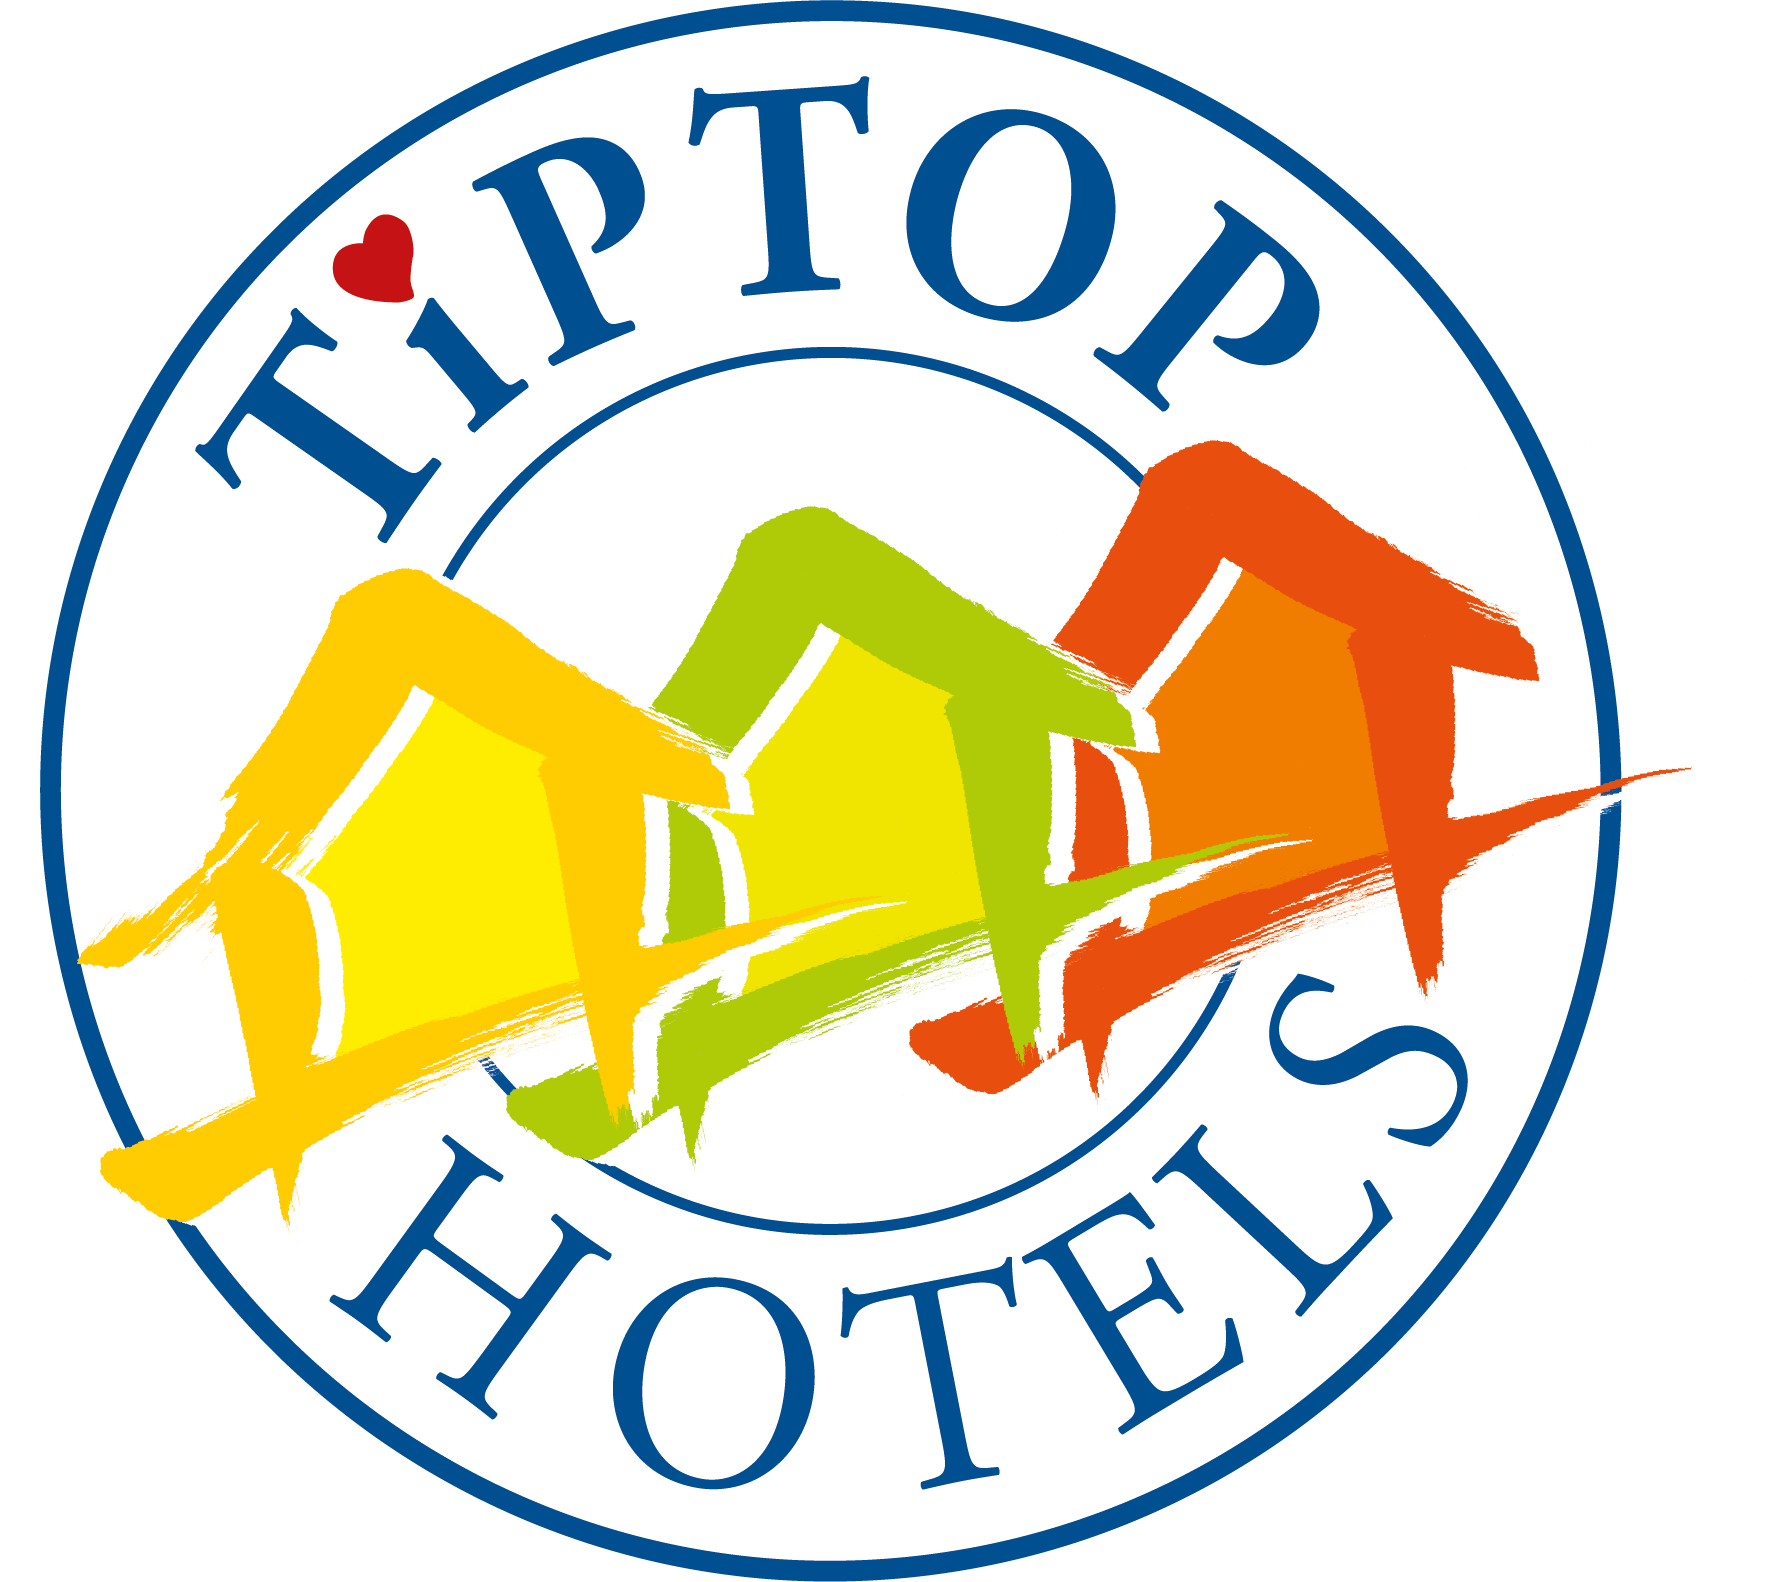 TIPTOP HOTELS Logo